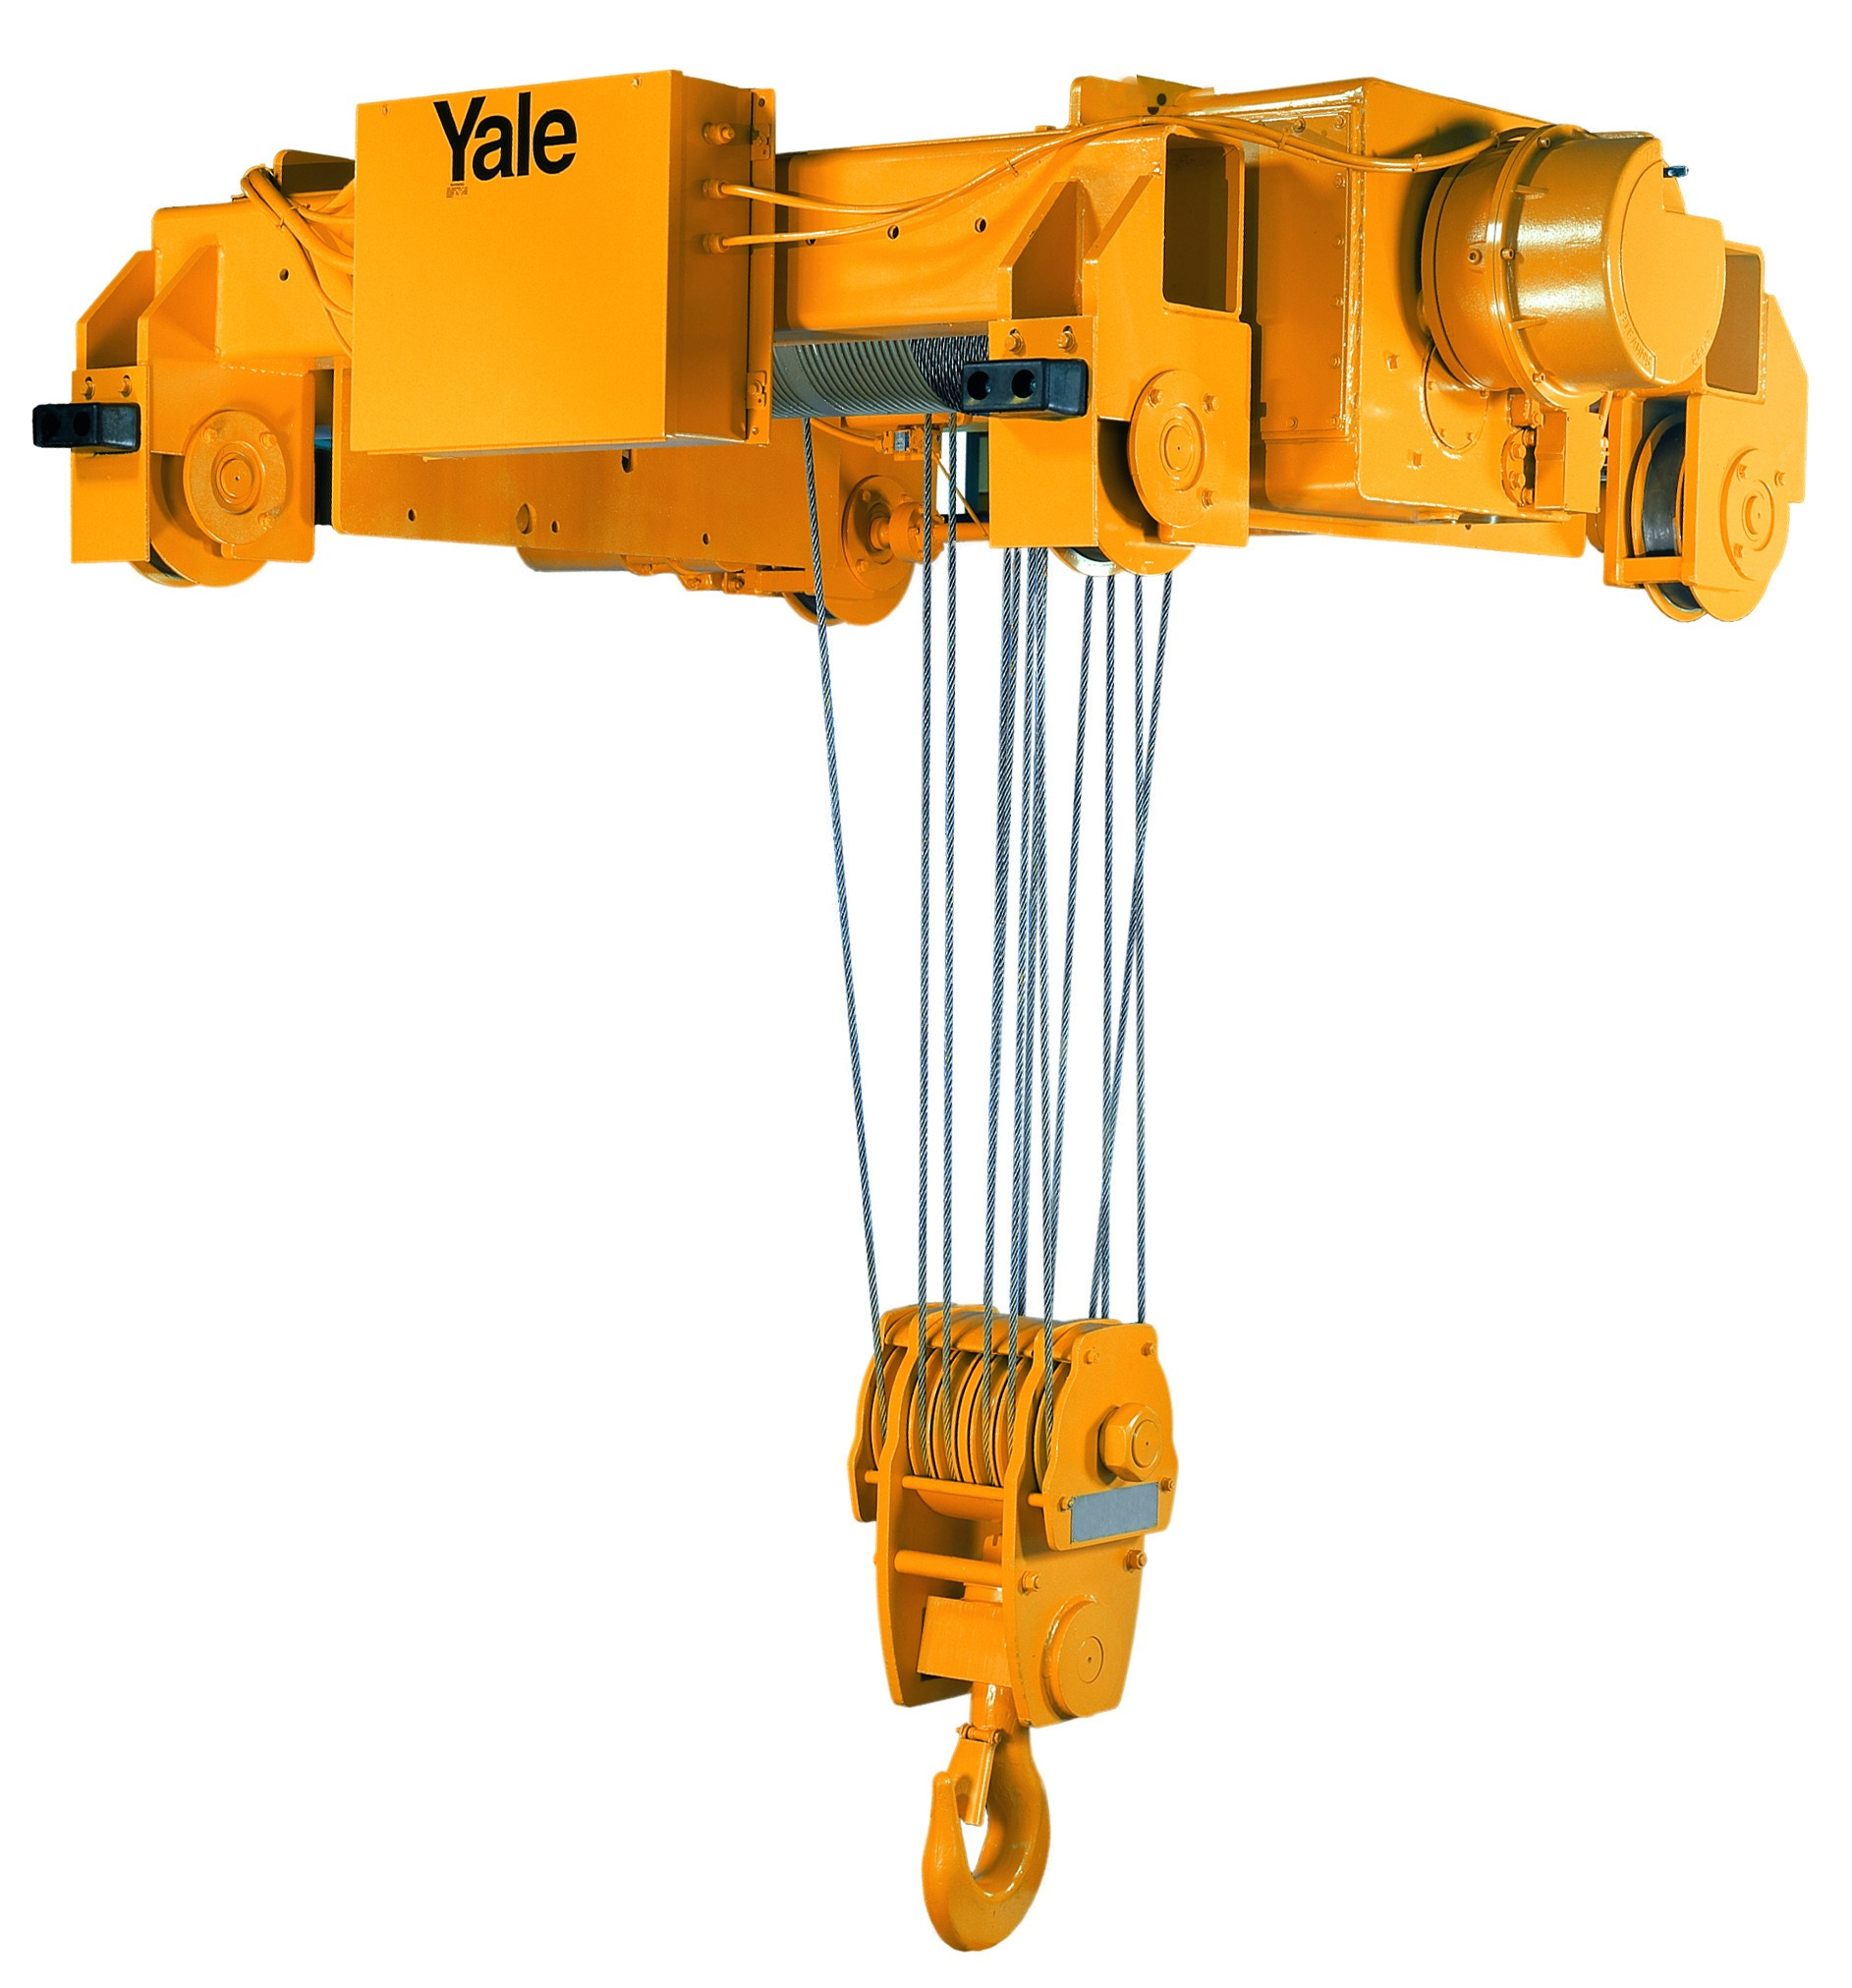 YALE - Cable King 20 Ton Electric Wire Rope Hoist (14fpm & 75' Lift Double Reeve)